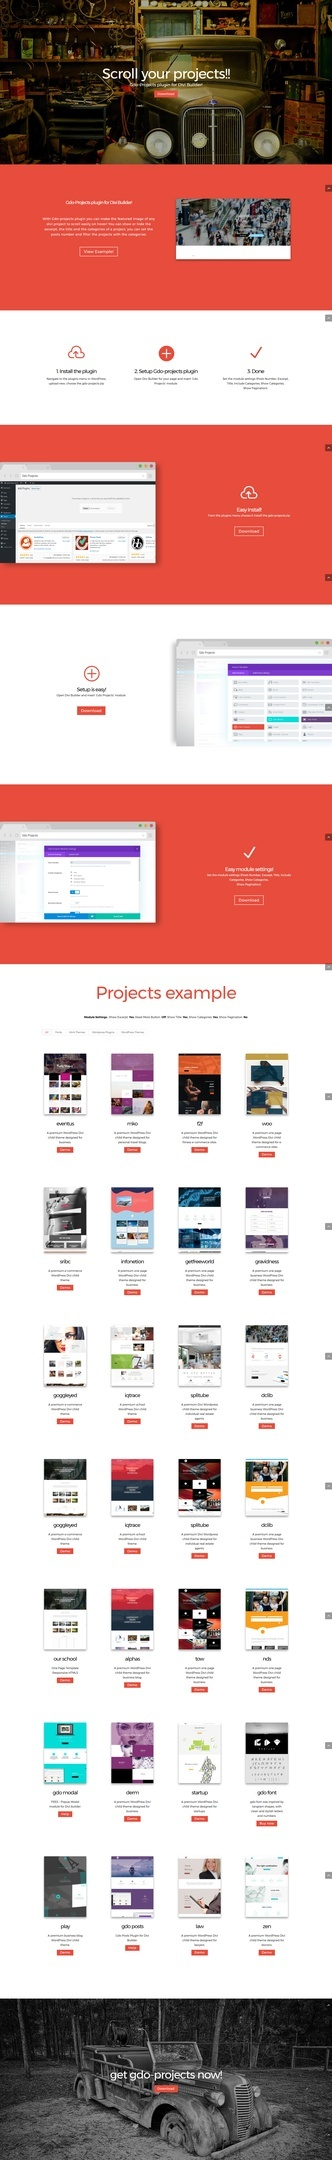 Gdo-Projects